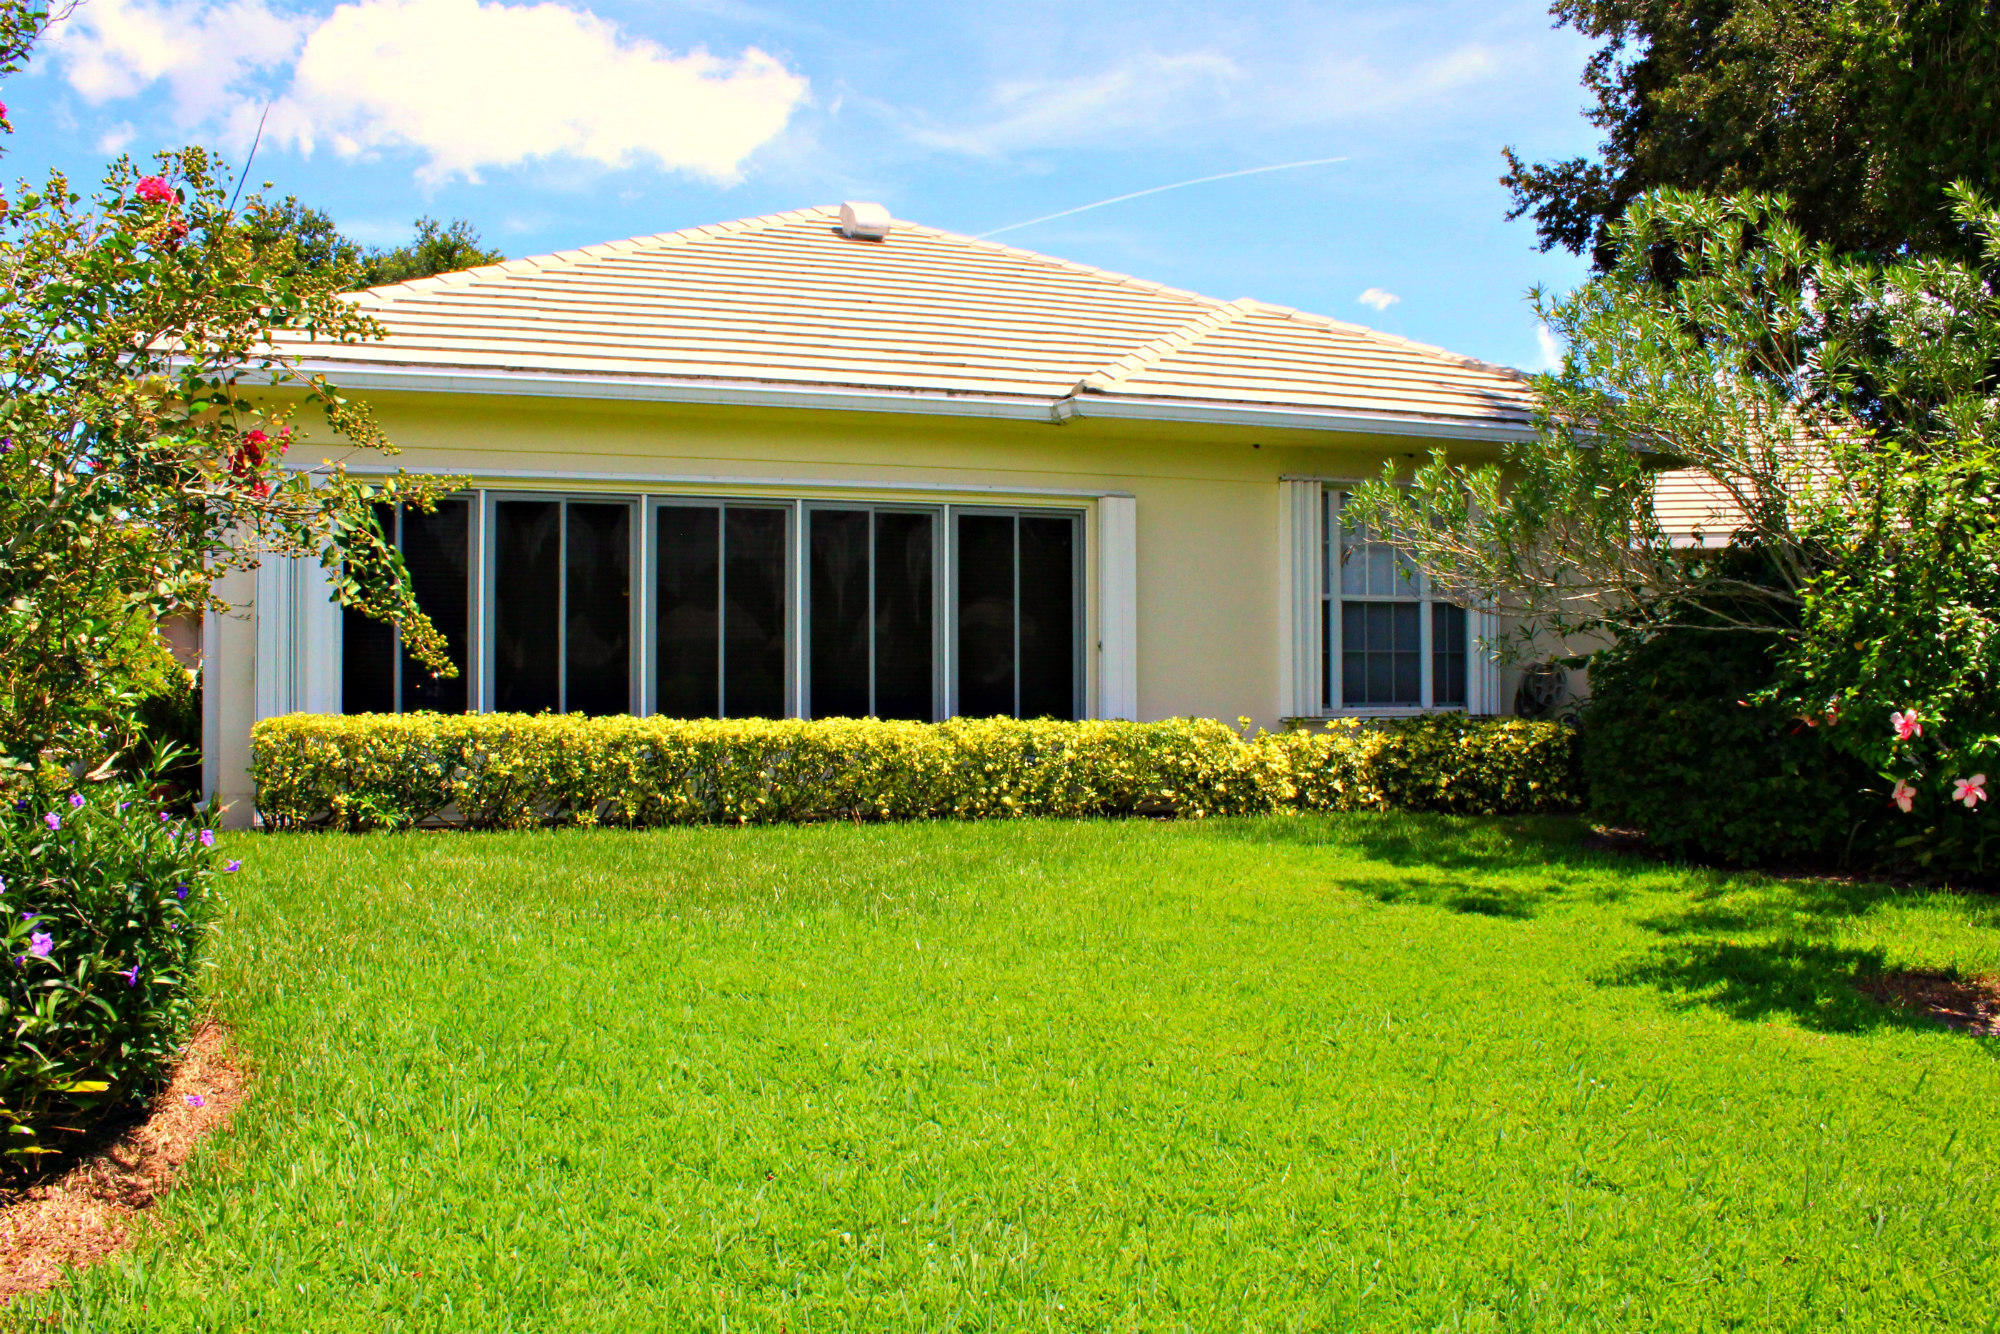 LAKES AT ST LUCIE WEST PLAT NO 22 REALTOR